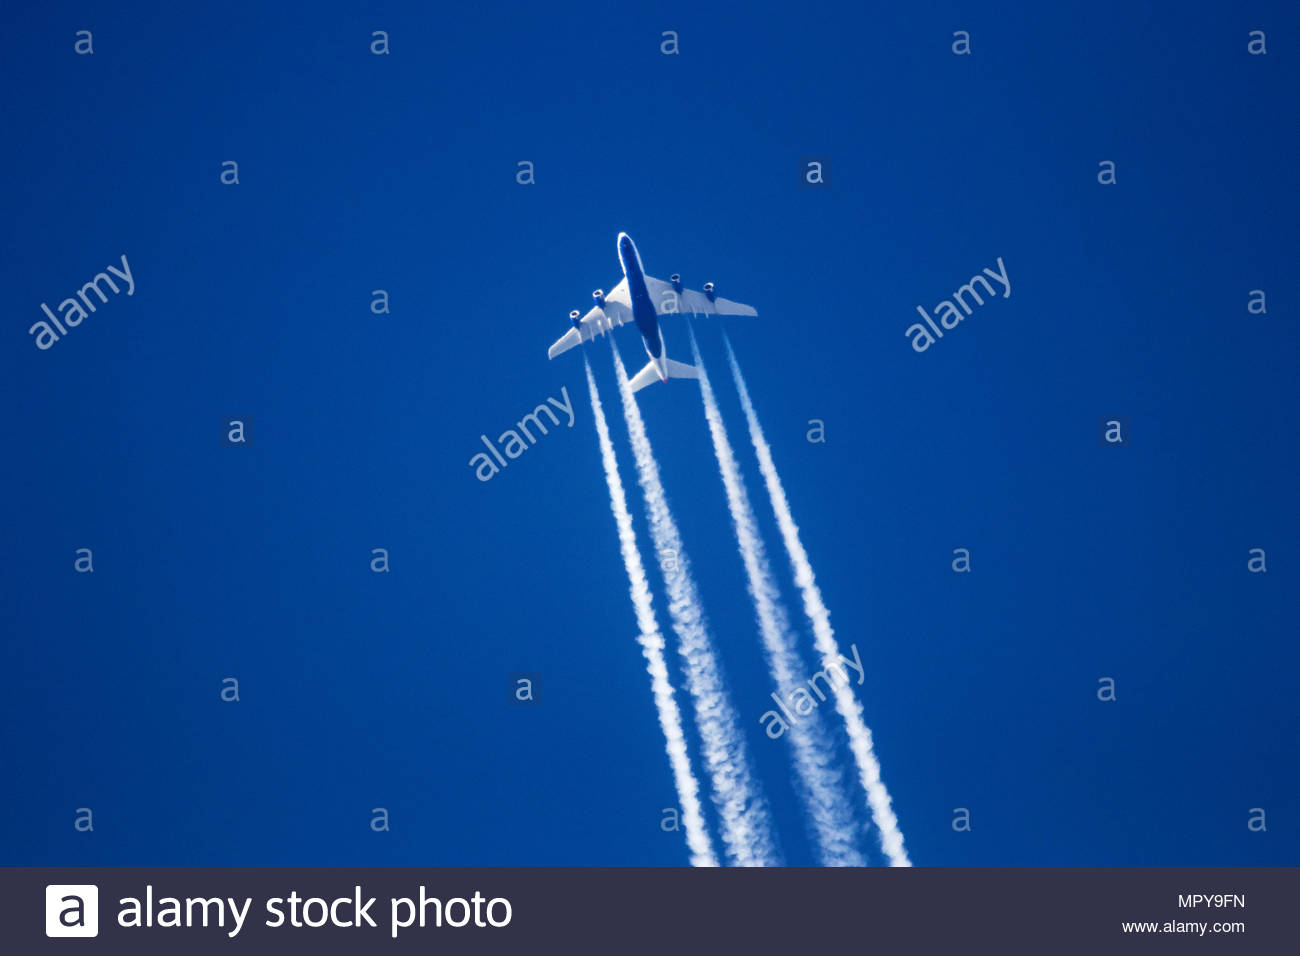 Low angle view of jet plane flying against clear blue sky - Stock Image